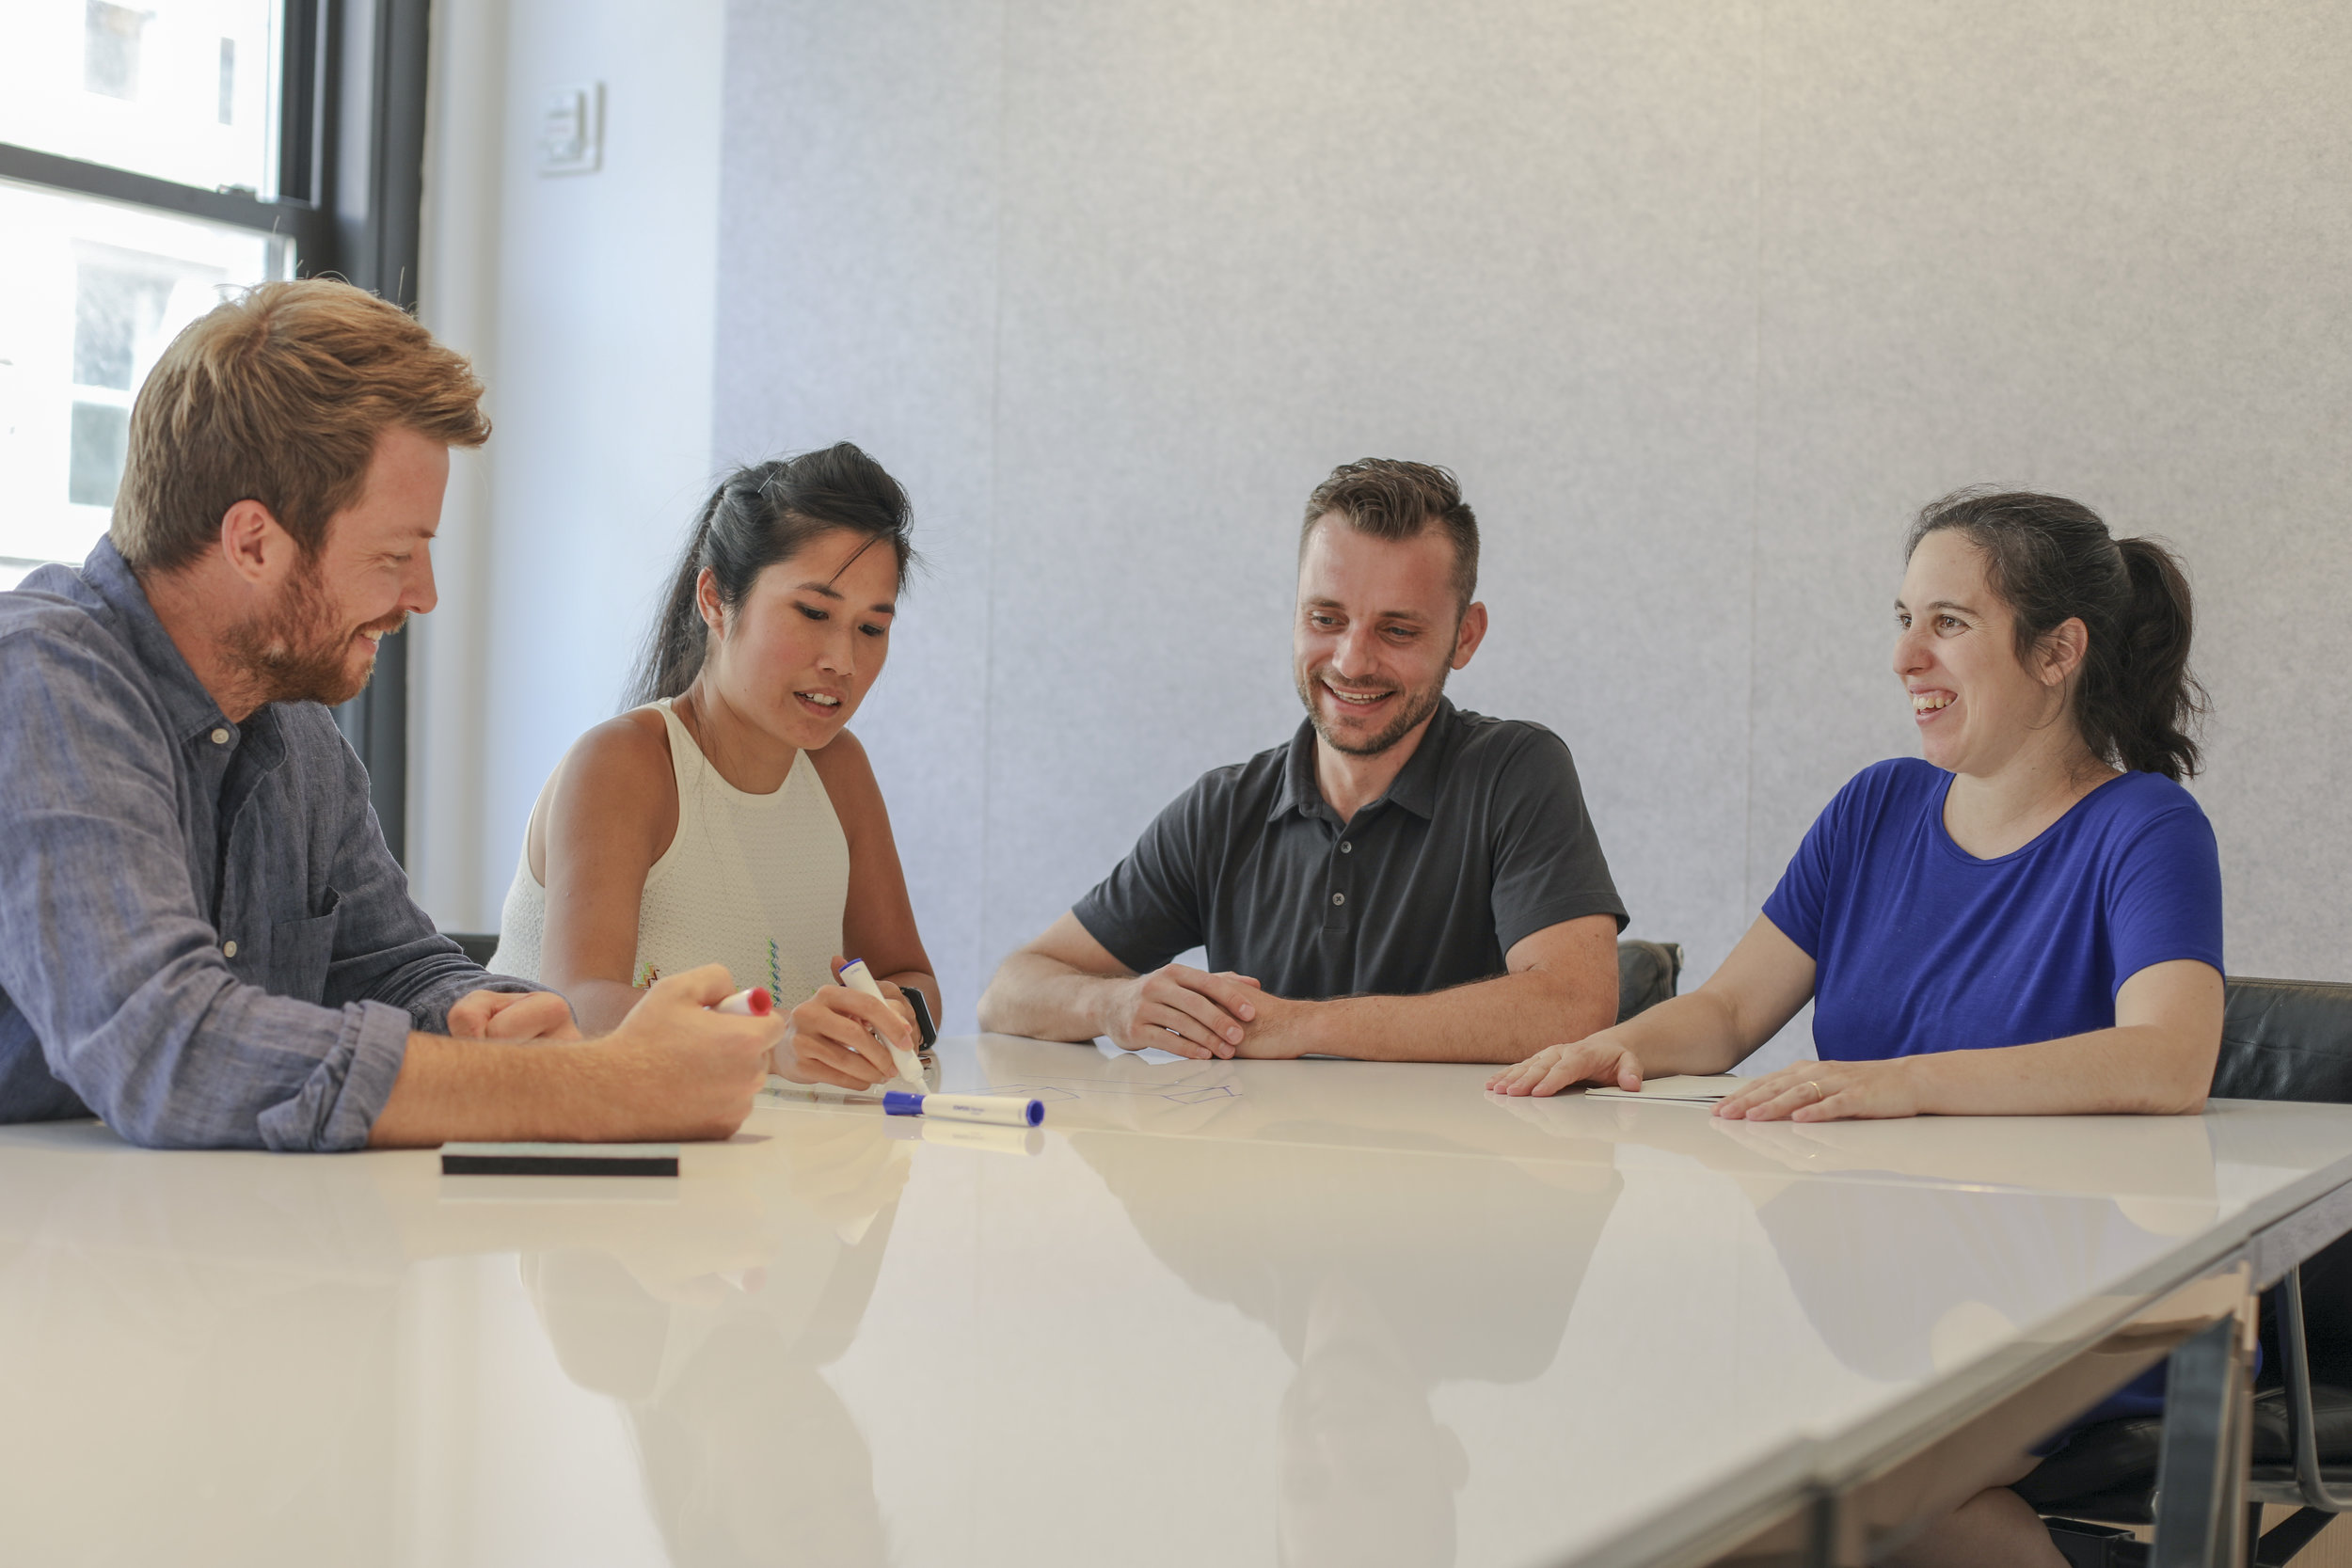 From left to right, Brian Thomas, Vivien Chin, Tim Aarsen, and Marta d'Allesandro